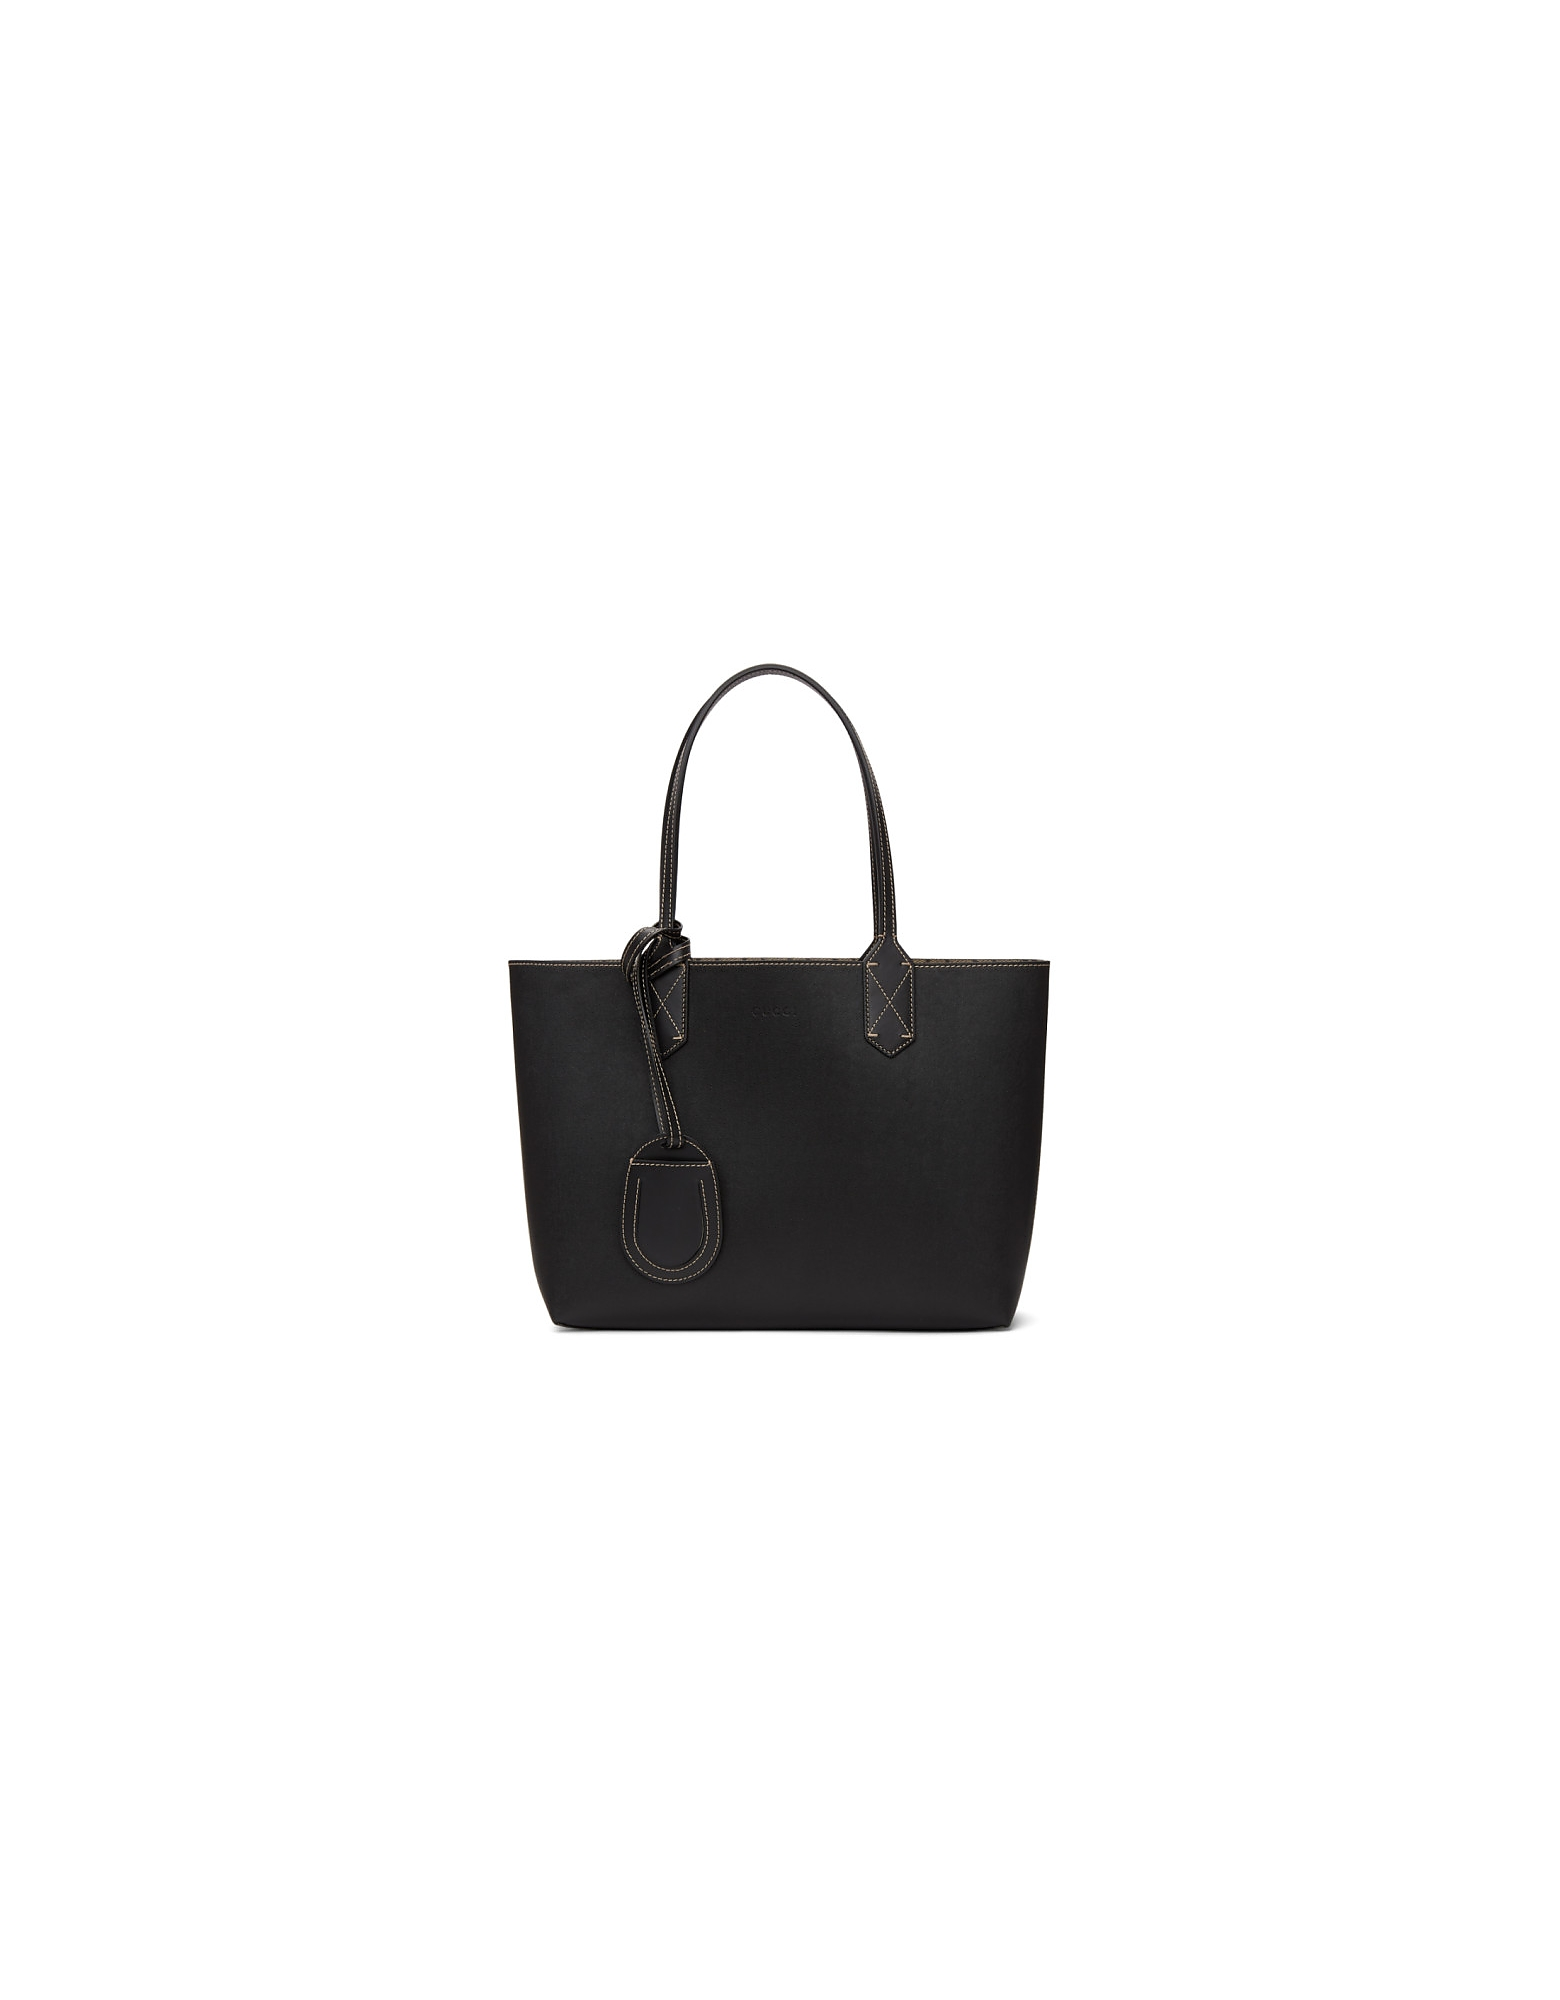 Gucci Designer Handbags, Reversible Black Small GG Tote